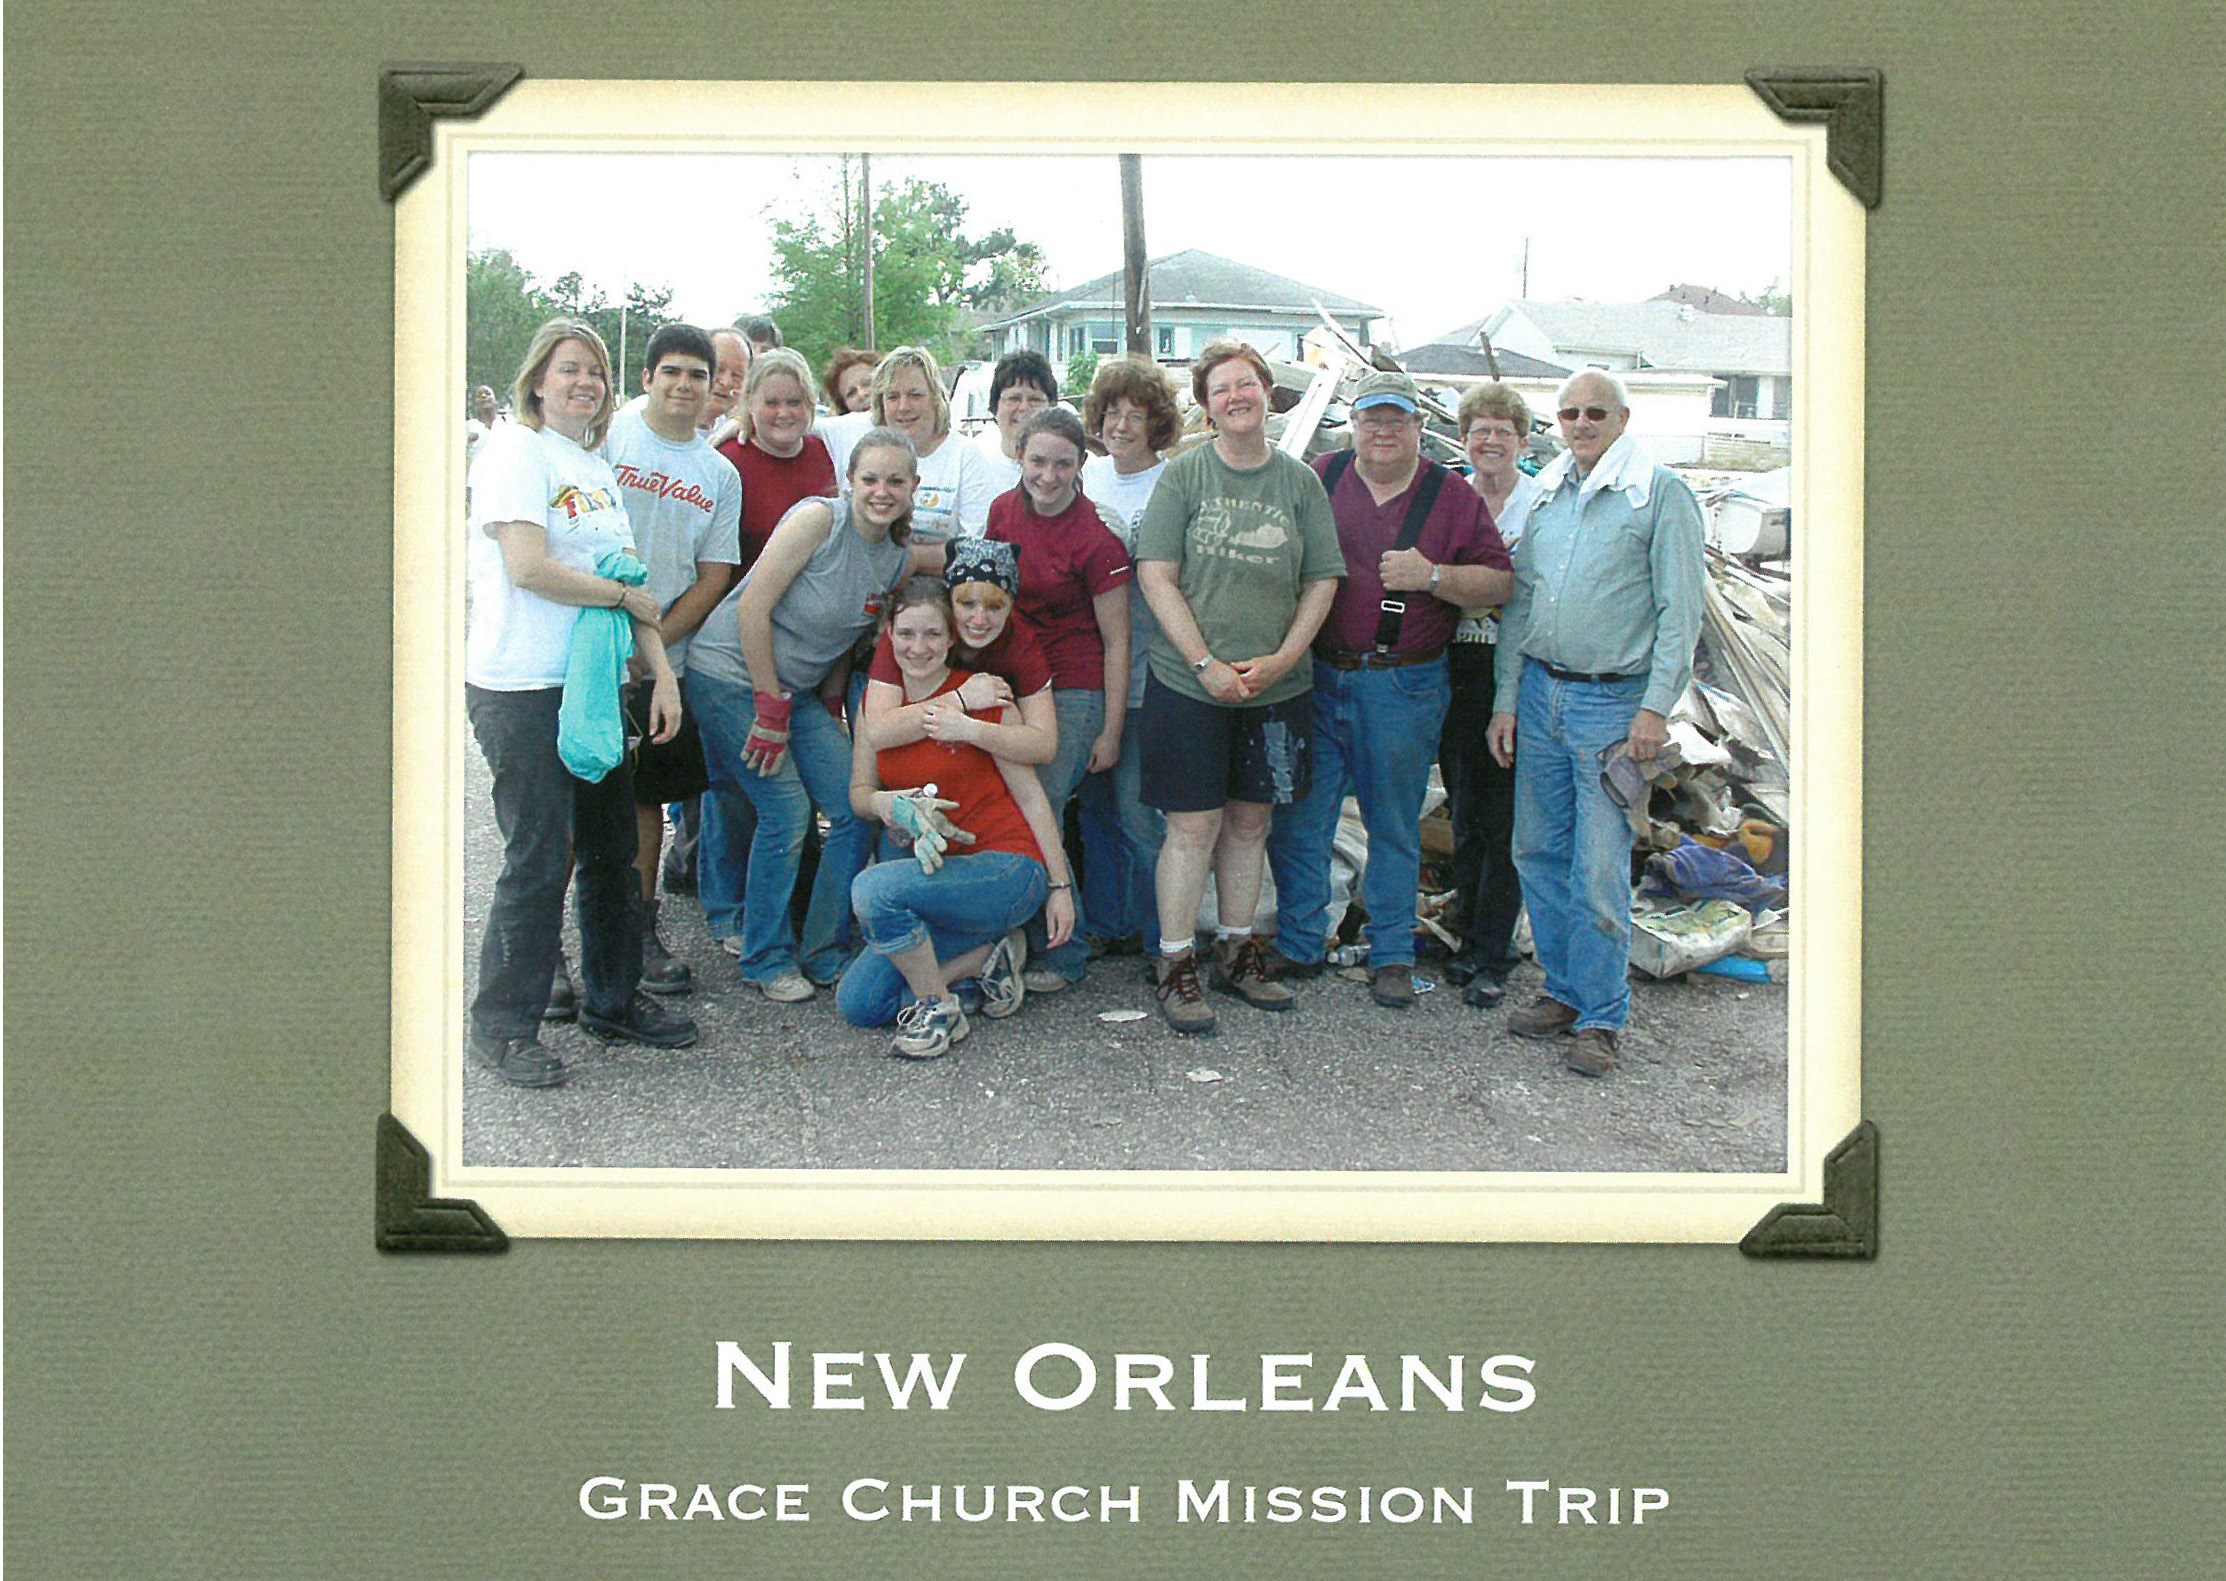 Front Facade of a Commemorative Booklet made by the missionaries to New Orleans in the Summer of 2007.